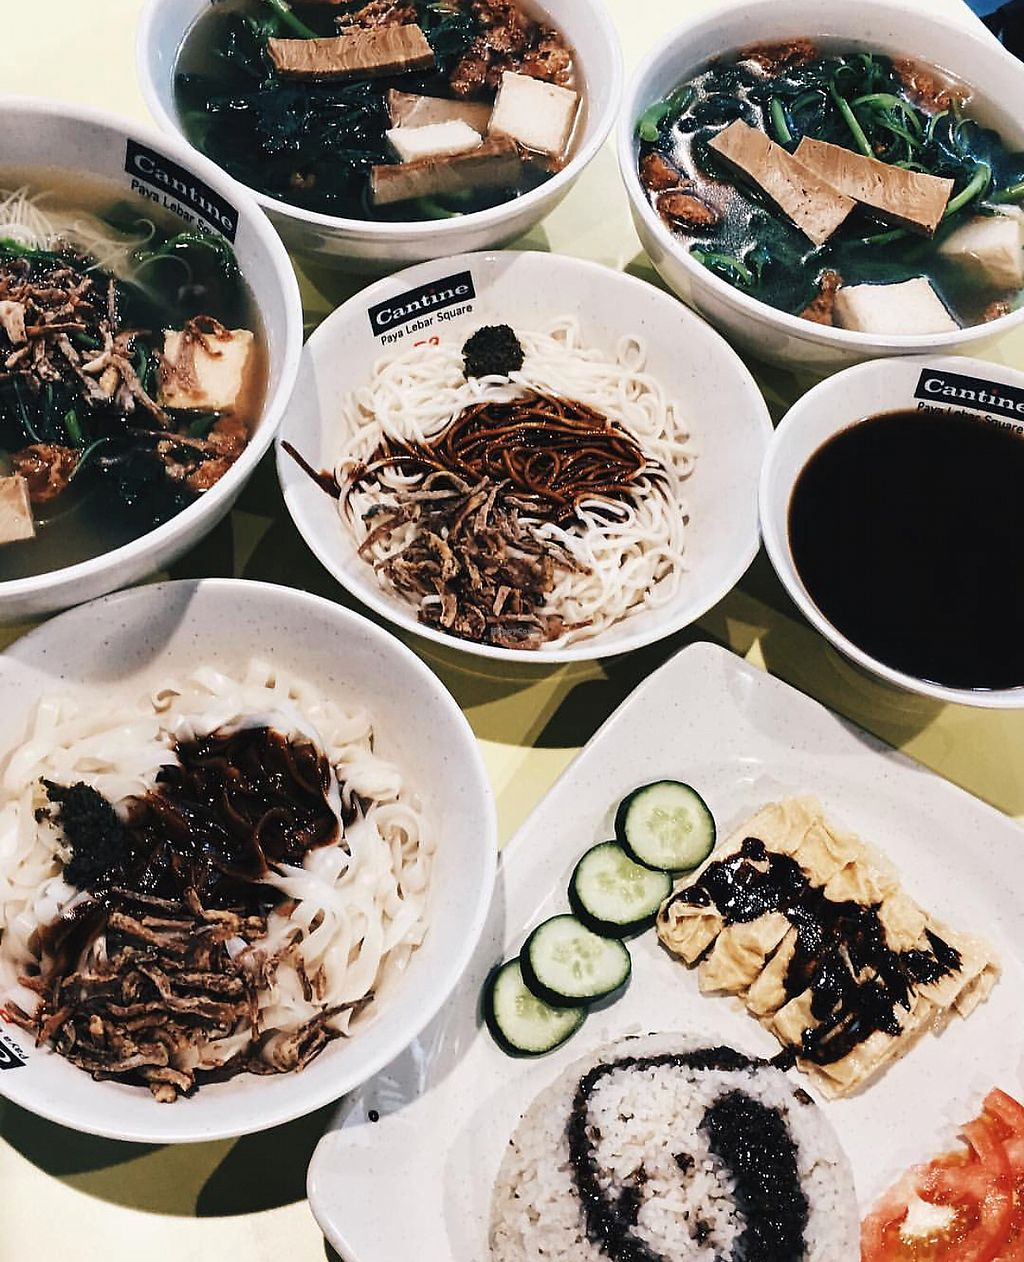 """Photo of Xuan Miao Vegan - Paya Lebar Square   by <a href=""""/members/profile/CherylQuincy"""">CherylQuincy</a> <br/>Noodles and rice <br/> January 31, 2018  - <a href='/contact/abuse/image/58745/353045'>Report</a>"""